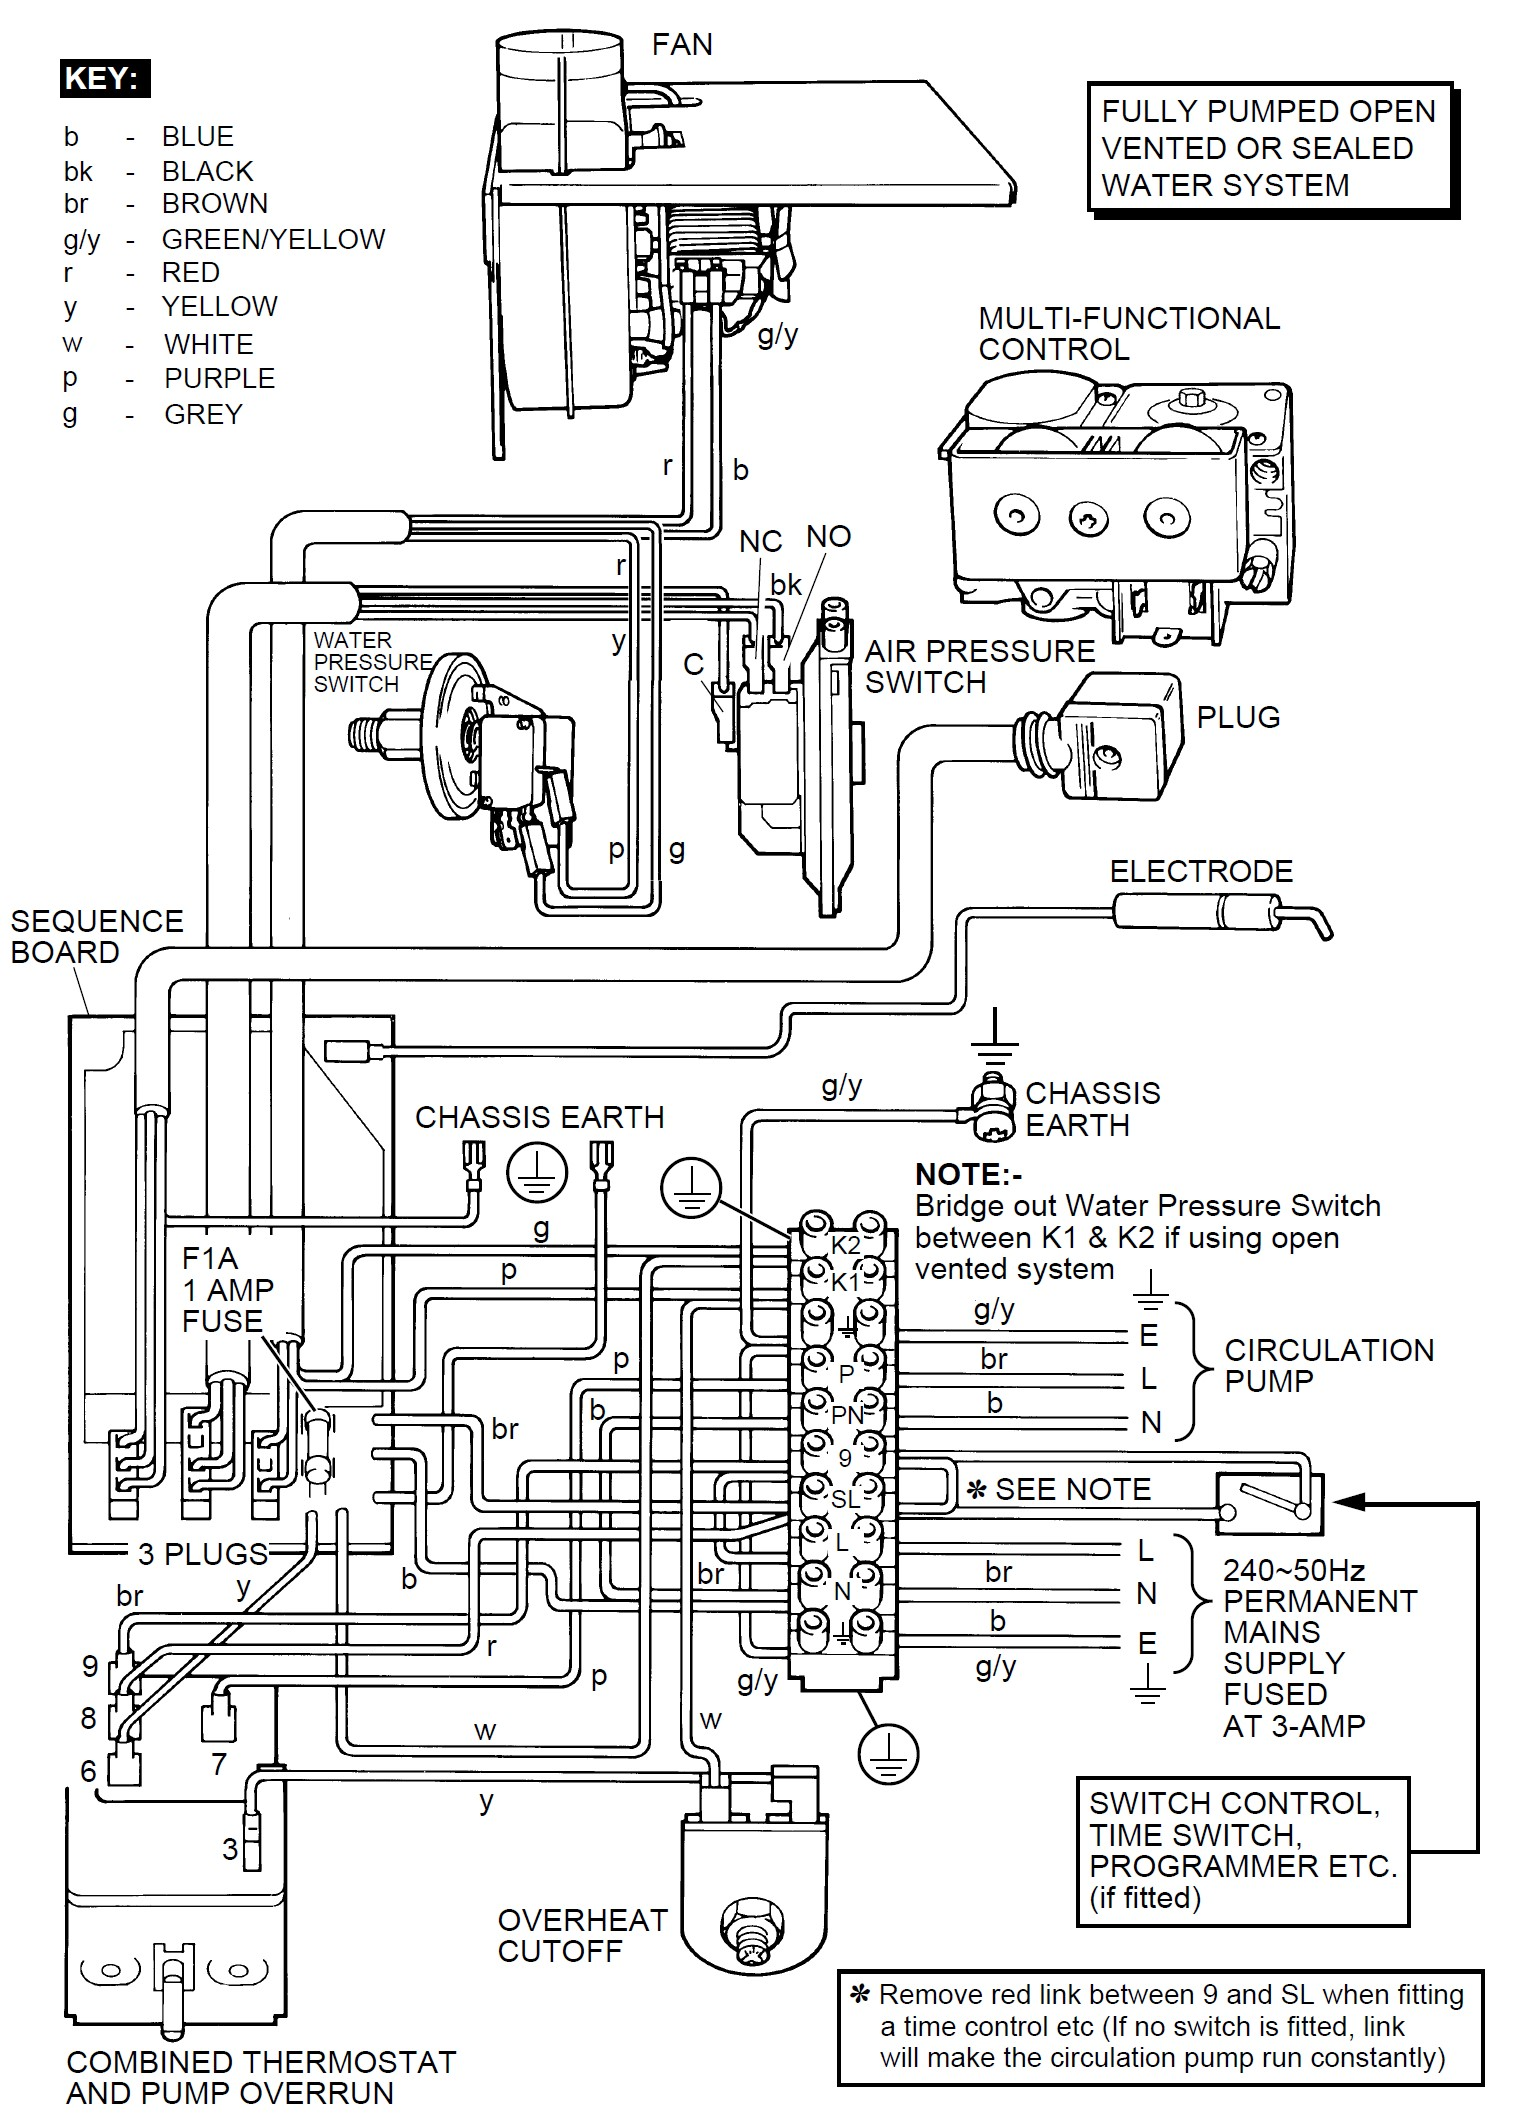 Boiler Pump Overrun Wiring Diagram : 34 Wiring Diagram